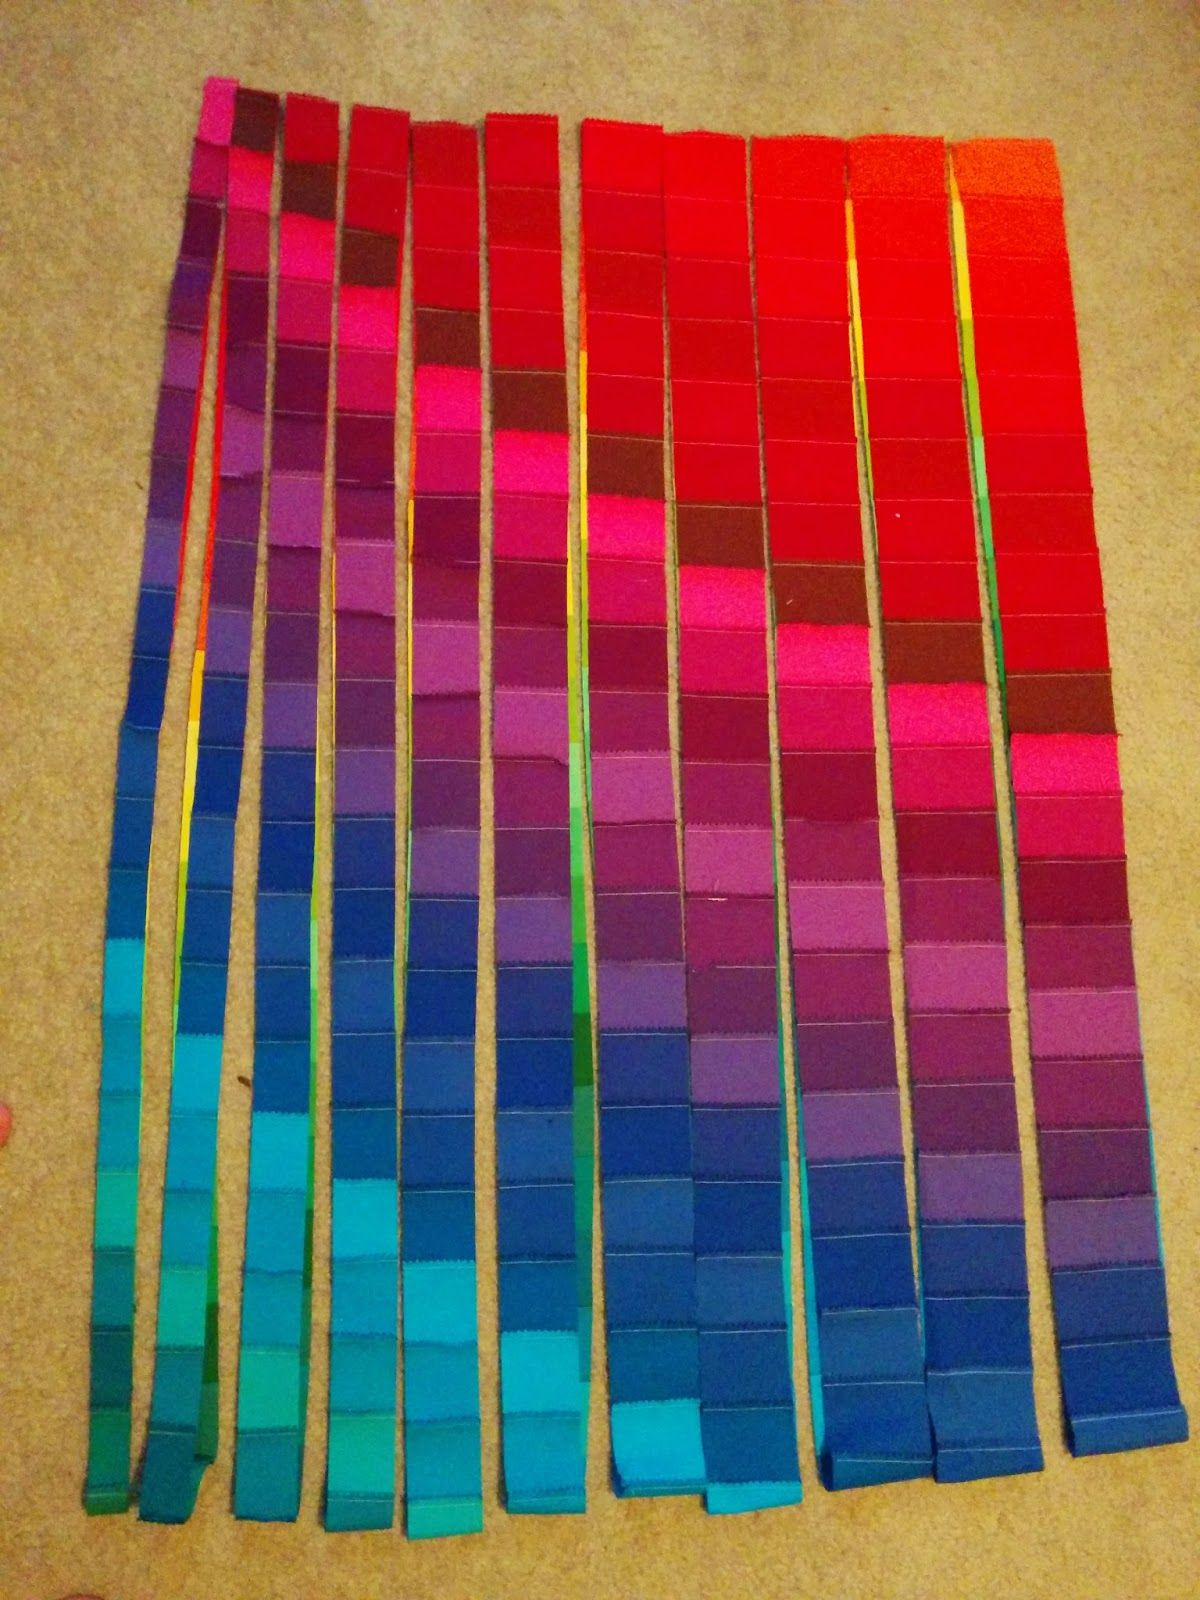 Lets Quilt Something: Rainbow Bargello - Jelly Roll Kona Roll Up ... : strip quilts using jelly rolls - Adamdwight.com